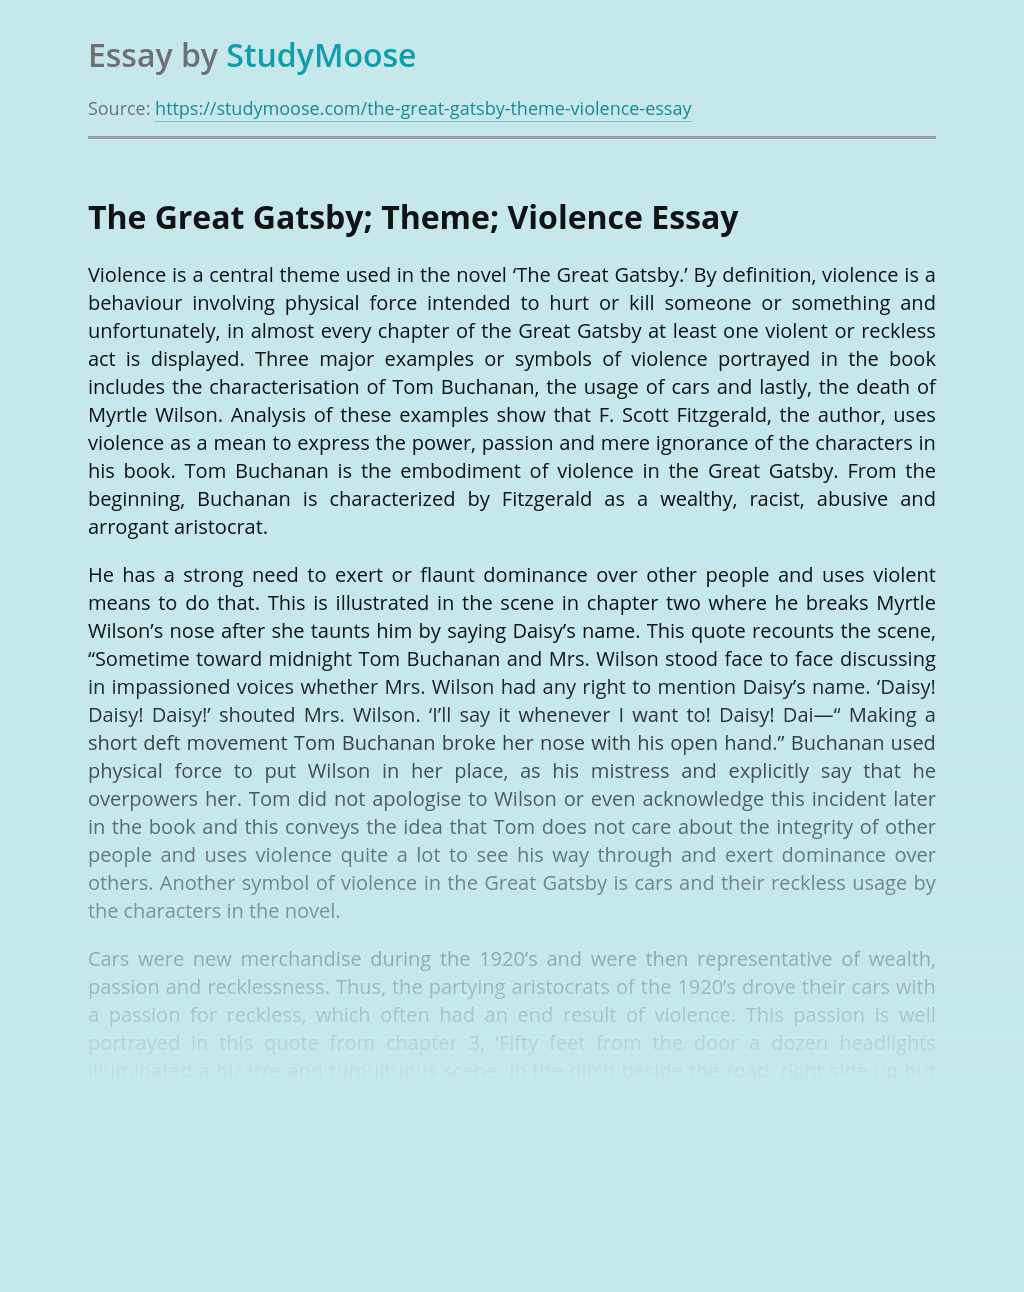 The Great Gatsby; Theme; Violence